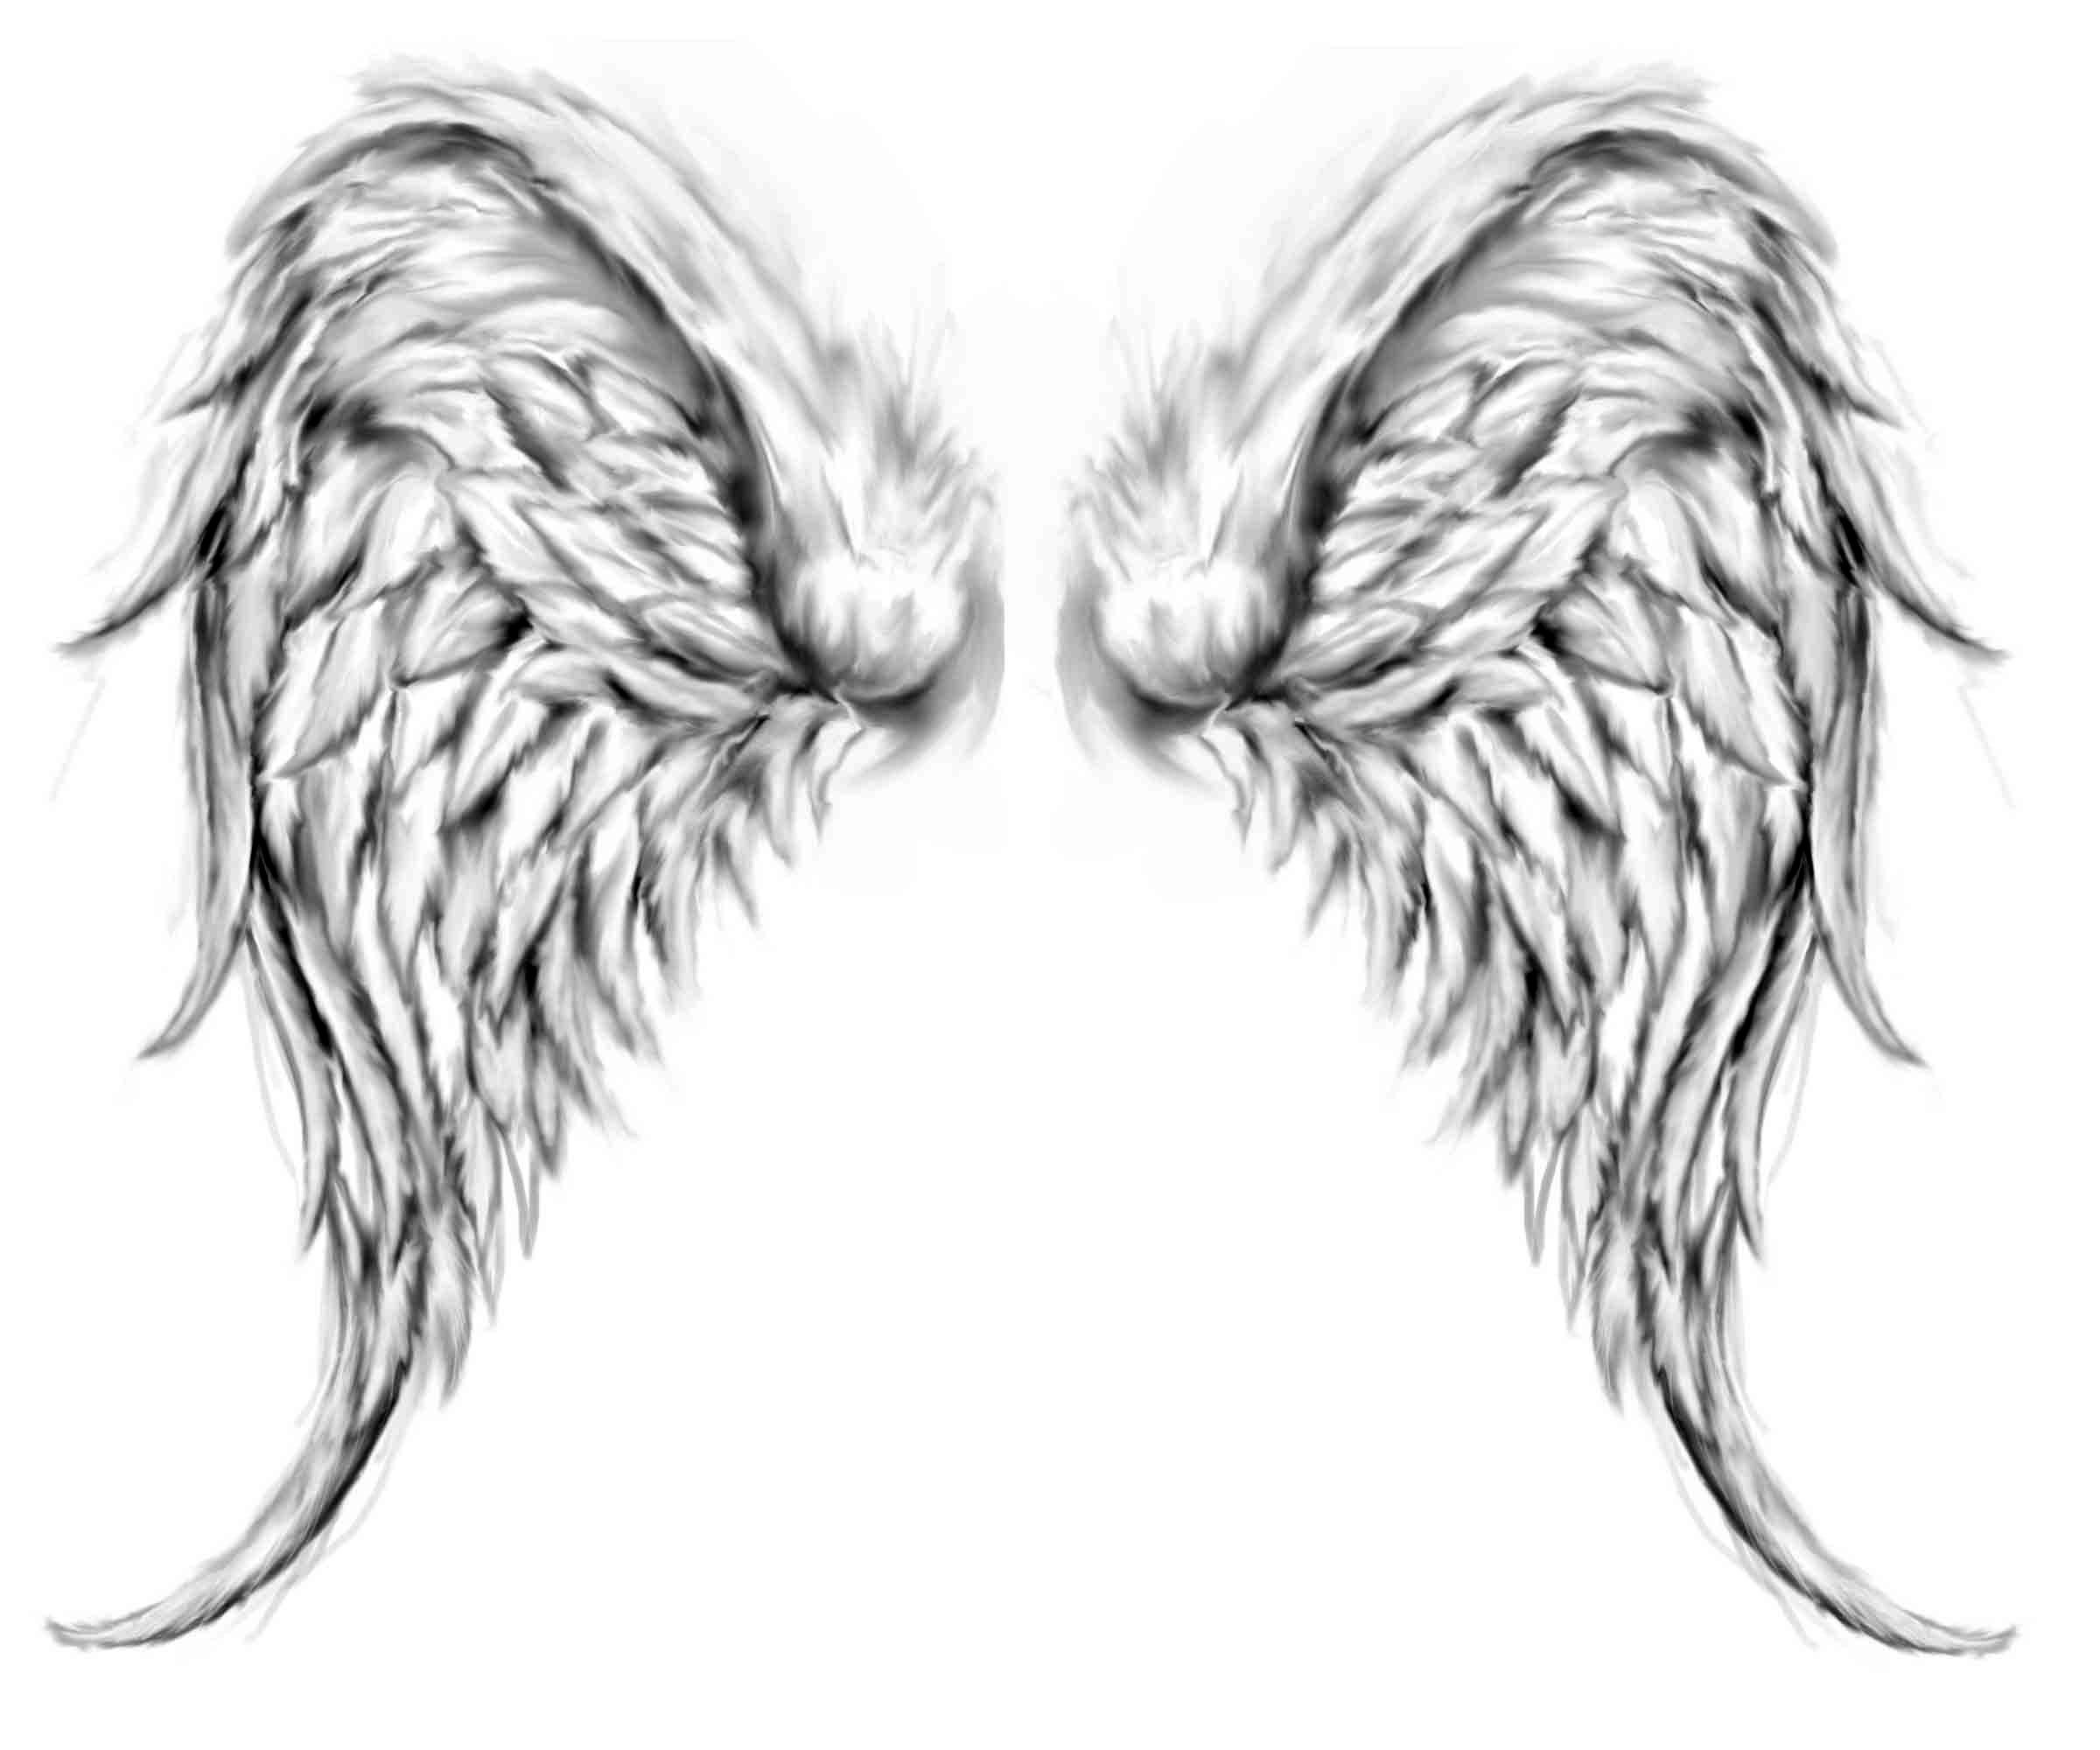 Tattoos Of Angels Wings | Cool Tattoos - Bonbaden | One Day ...